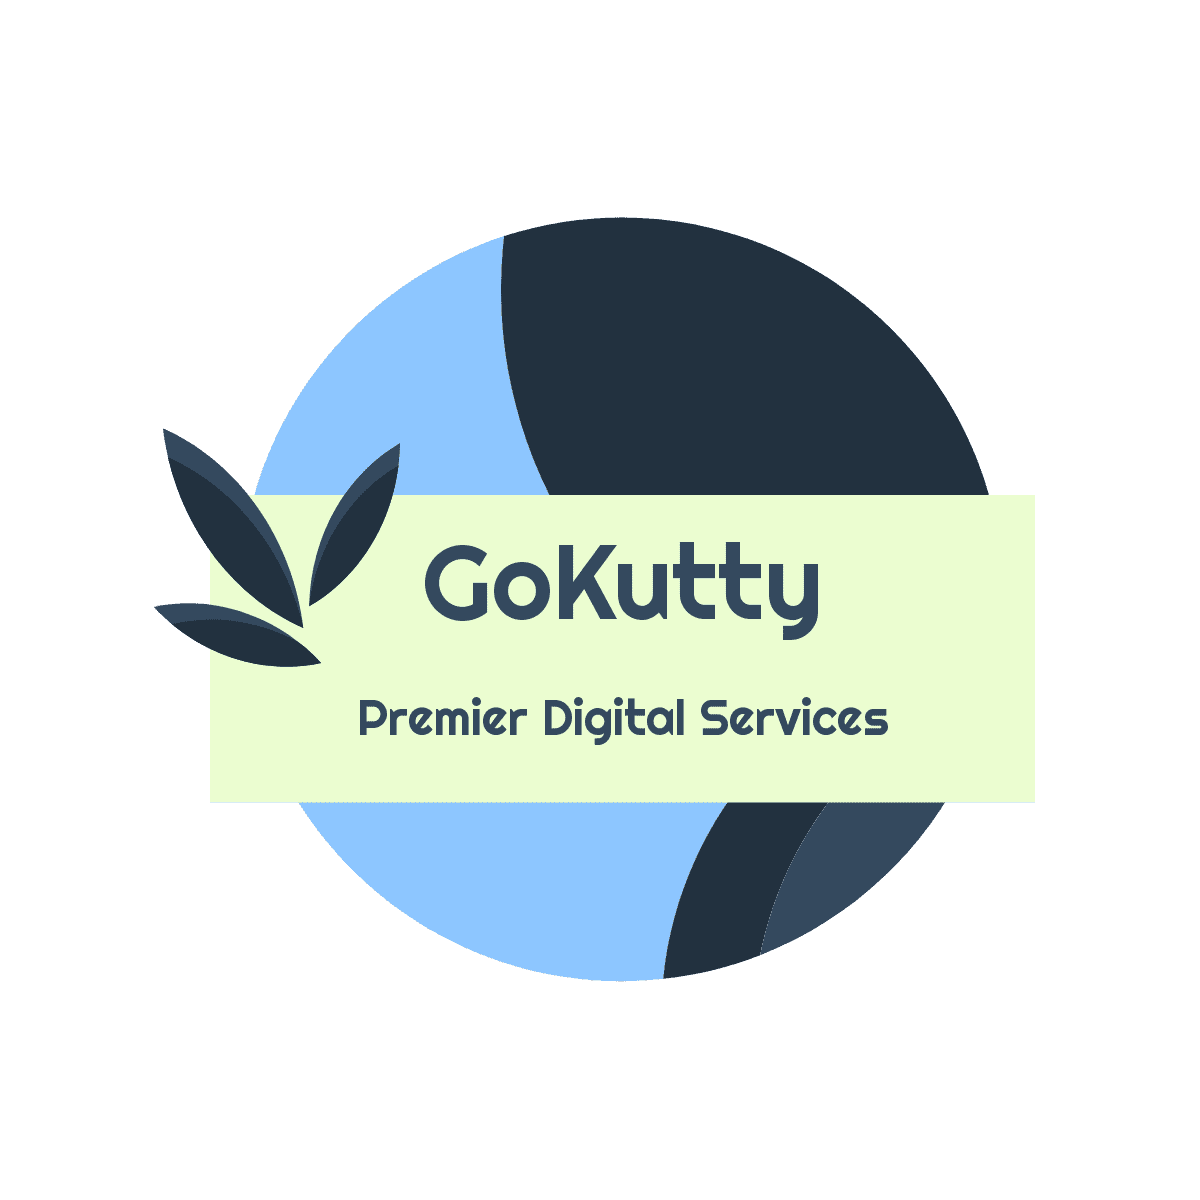 GoKutty – Premier Digital Services